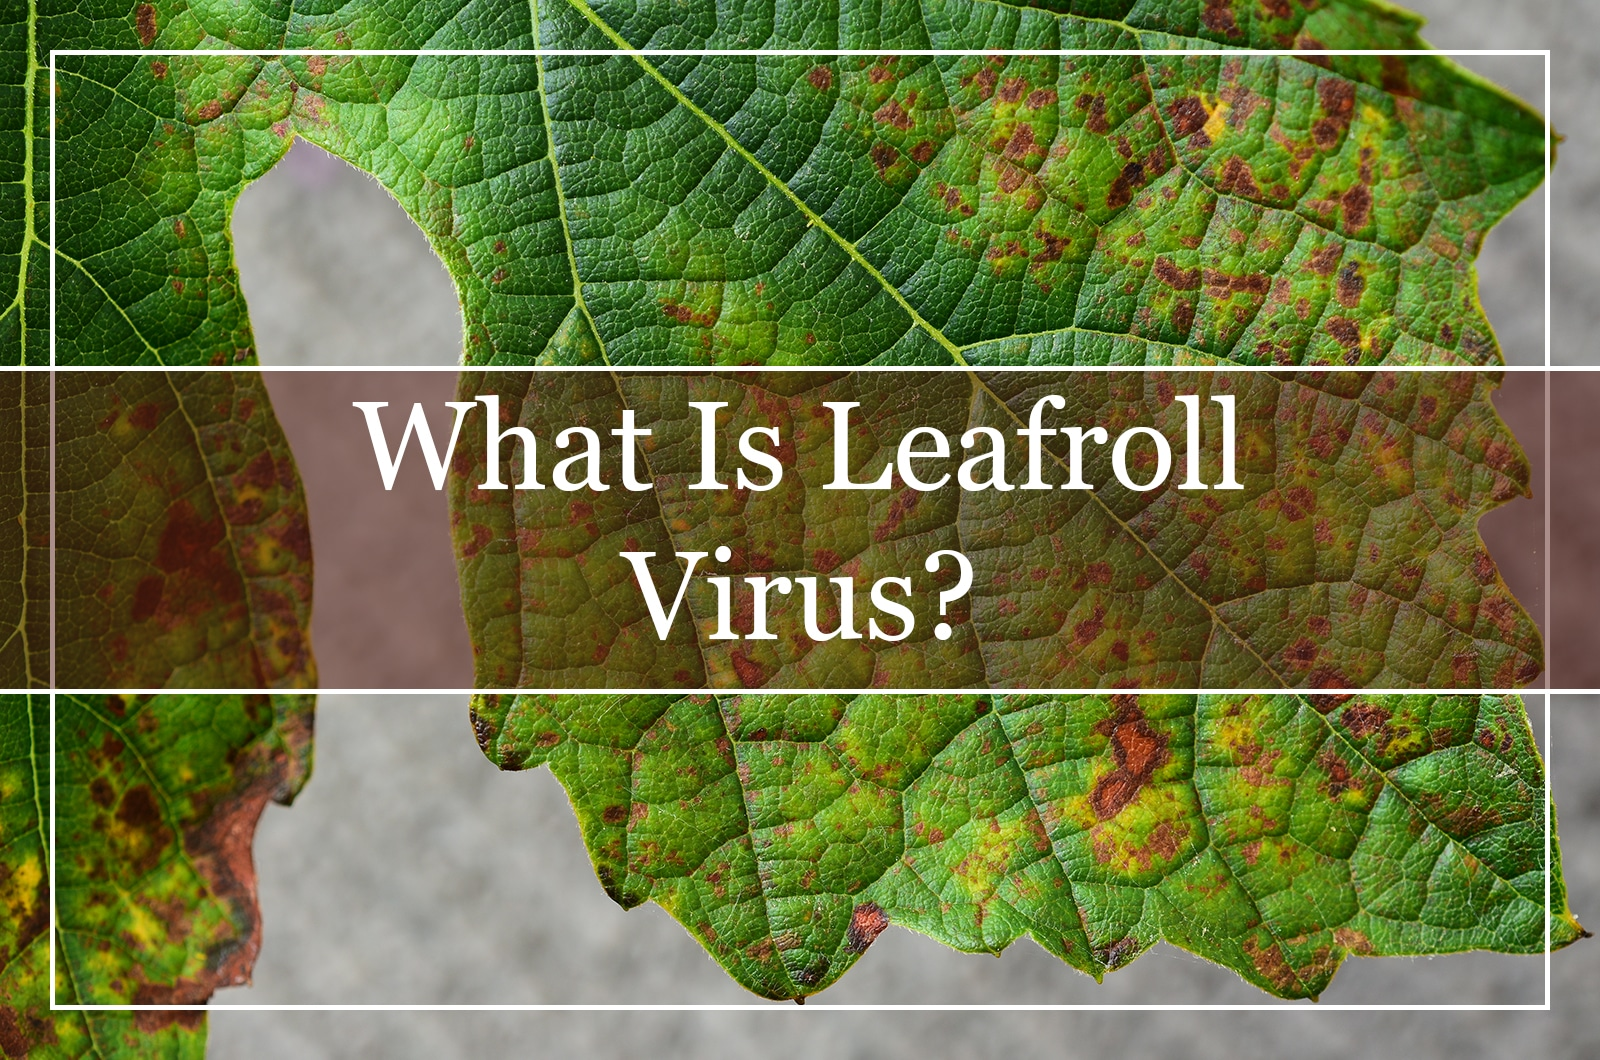 What Is Leafroll Virus